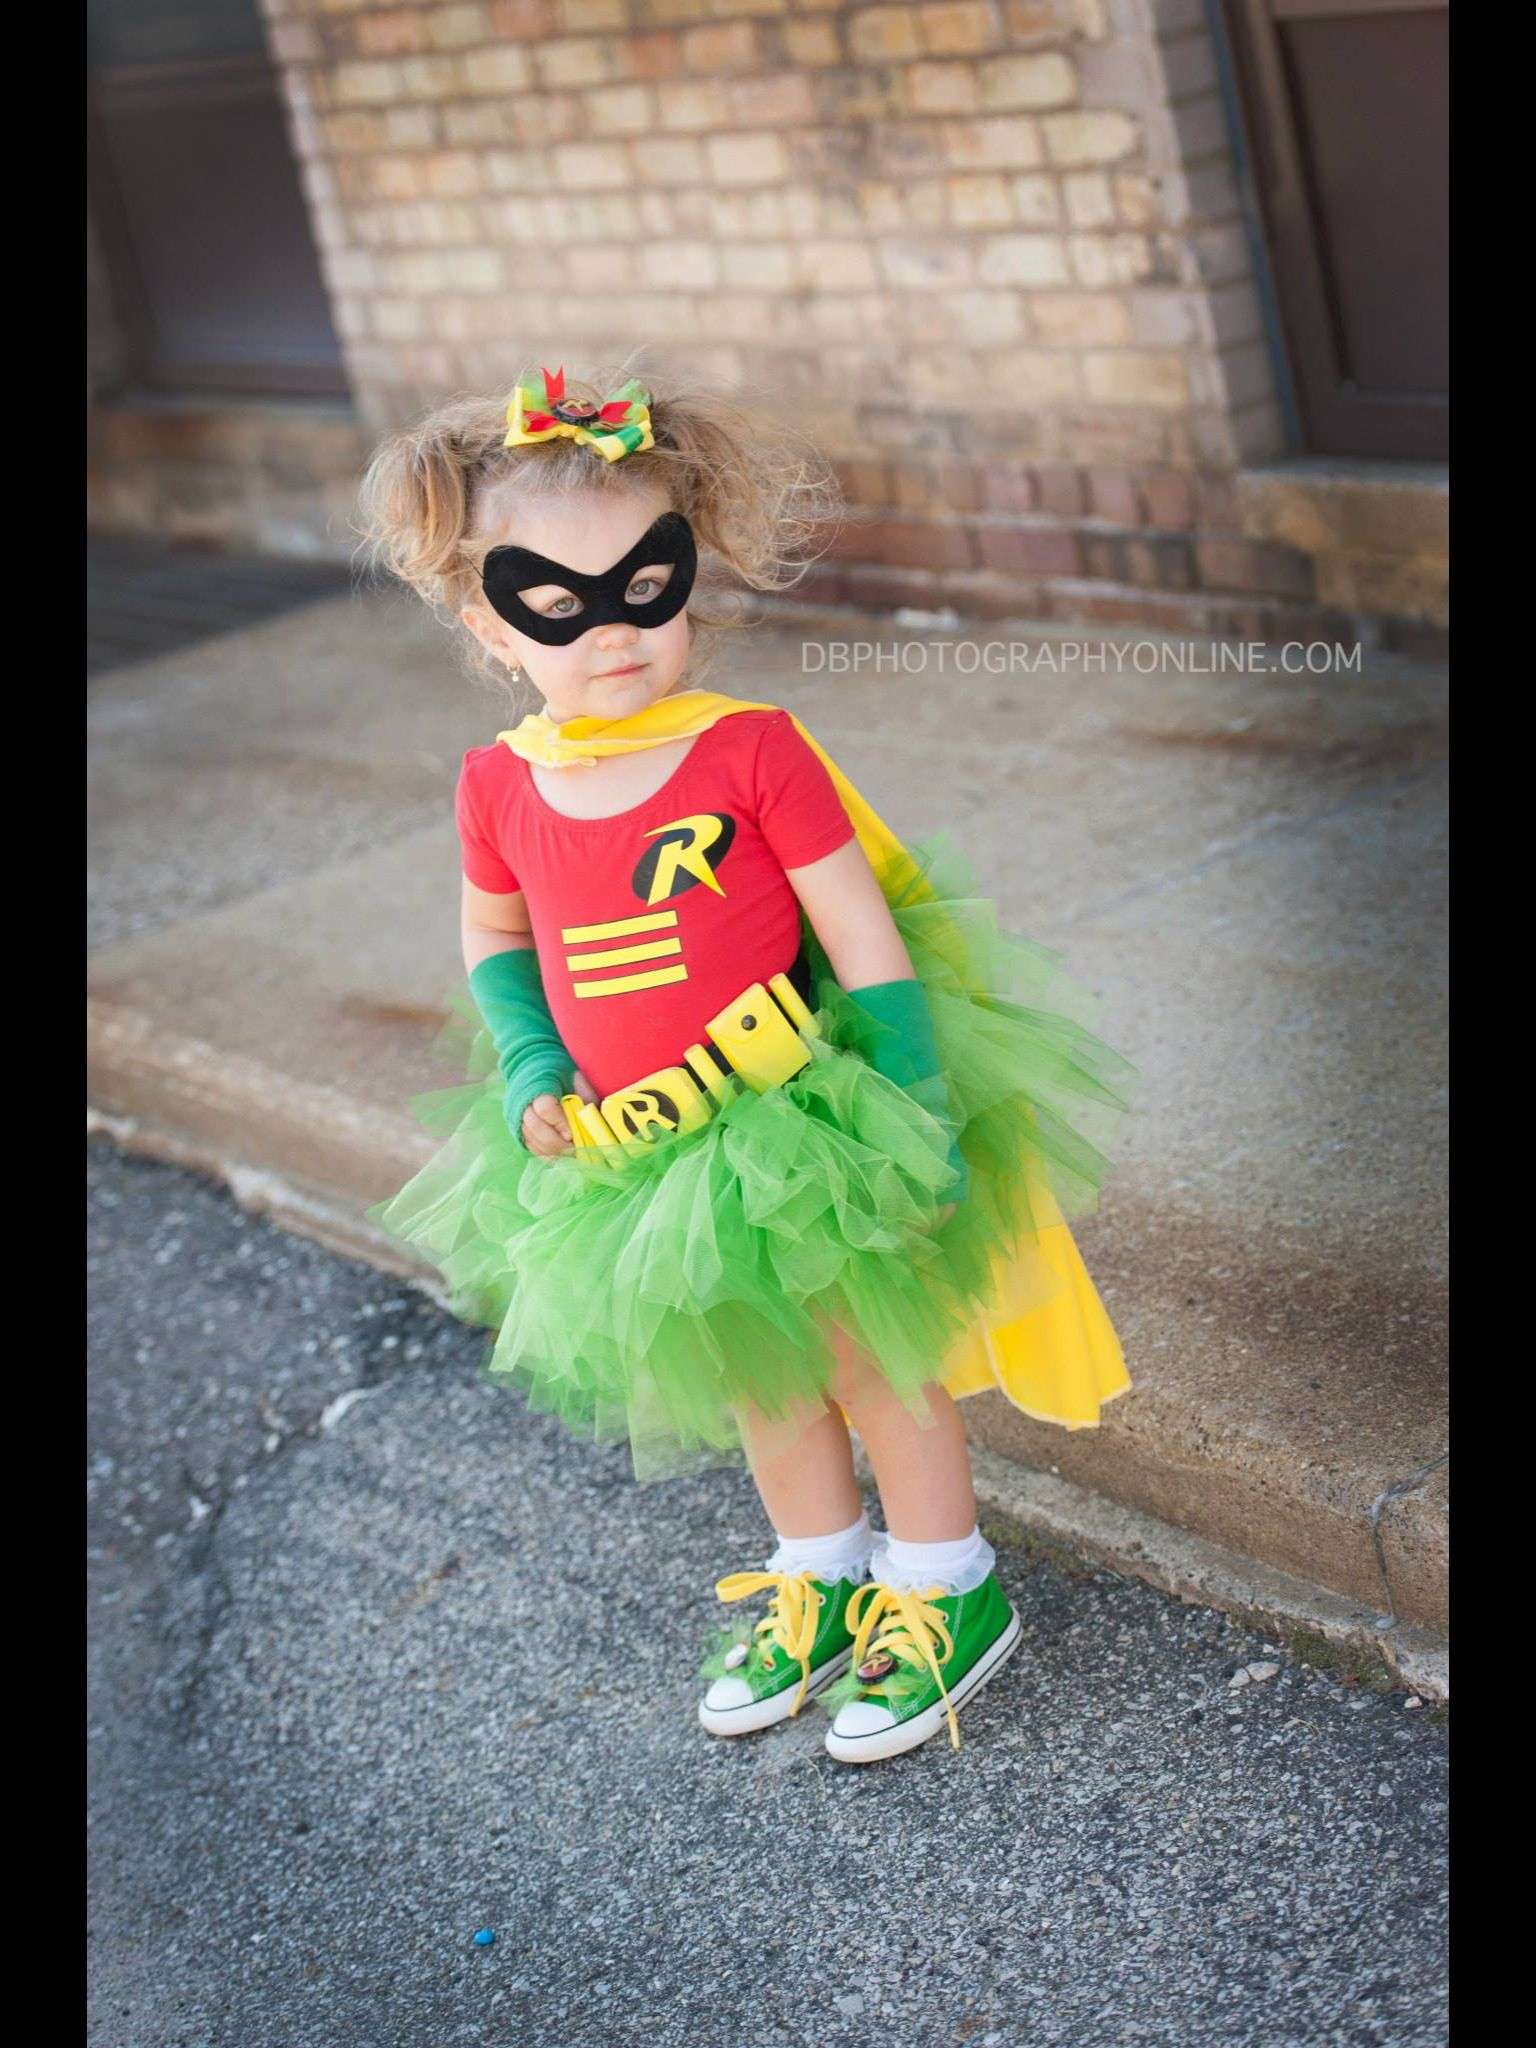 Toddler girl halloween costume idea superhero Batman and Robin & Toddler girl halloween costume idea superhero Batman and Robin ...